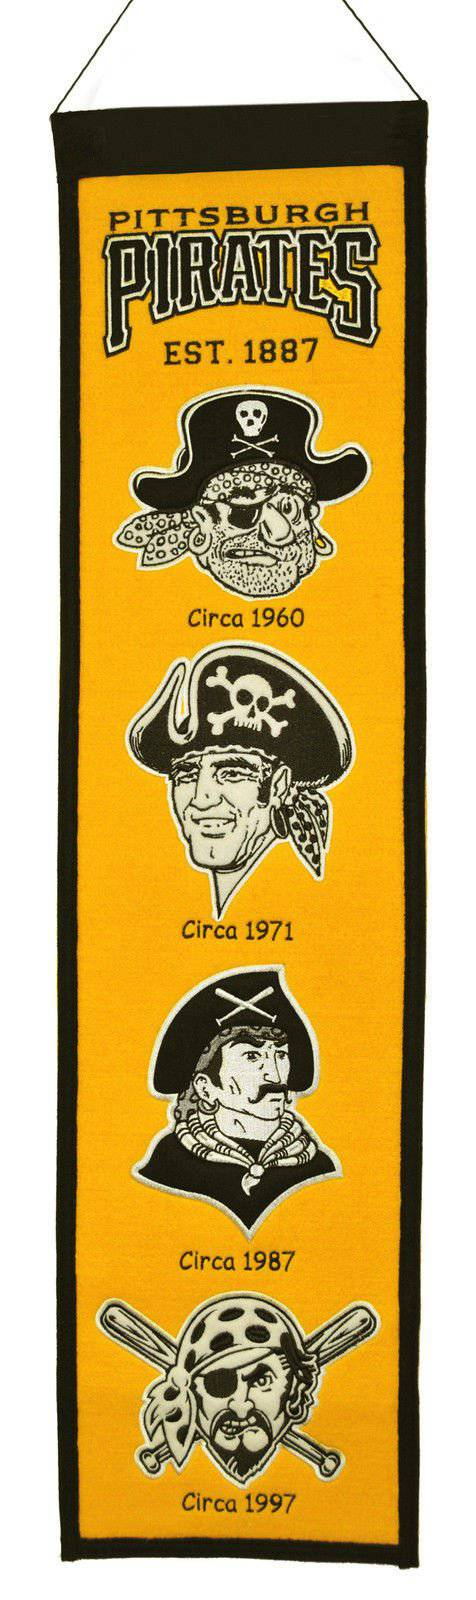 "Pittsburgh Pirates Heritage Banner 8""x32"" Wool Embroidered"